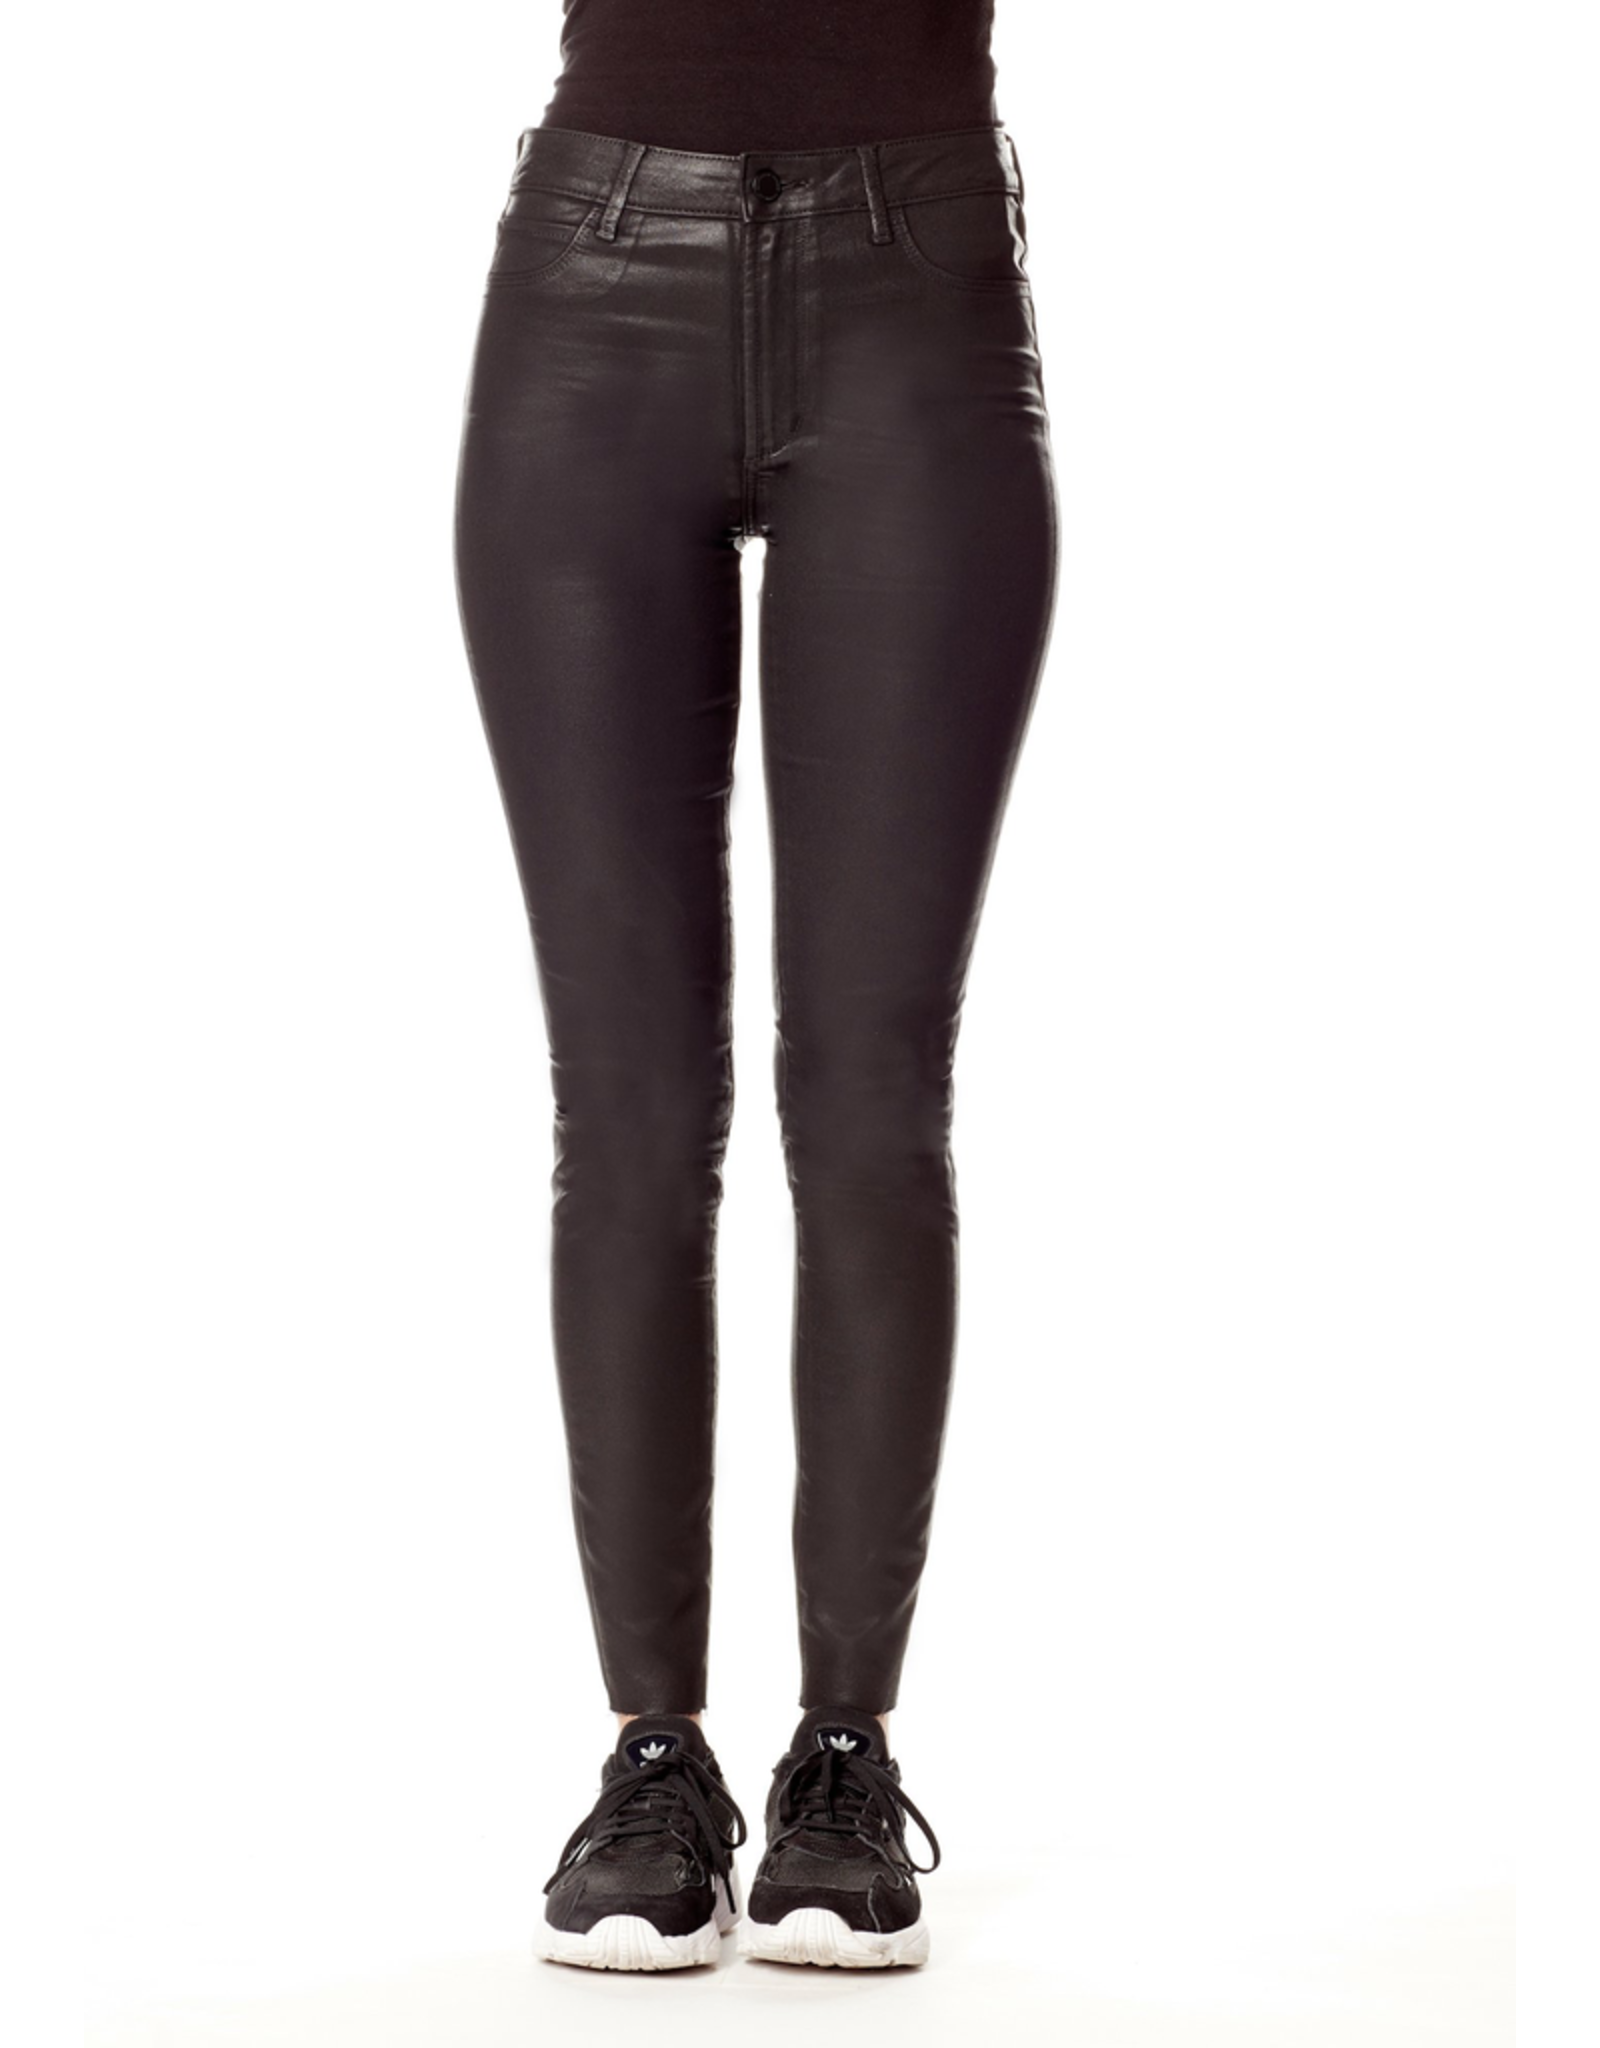 flight lux articles of society hilary wax coated high rise pants